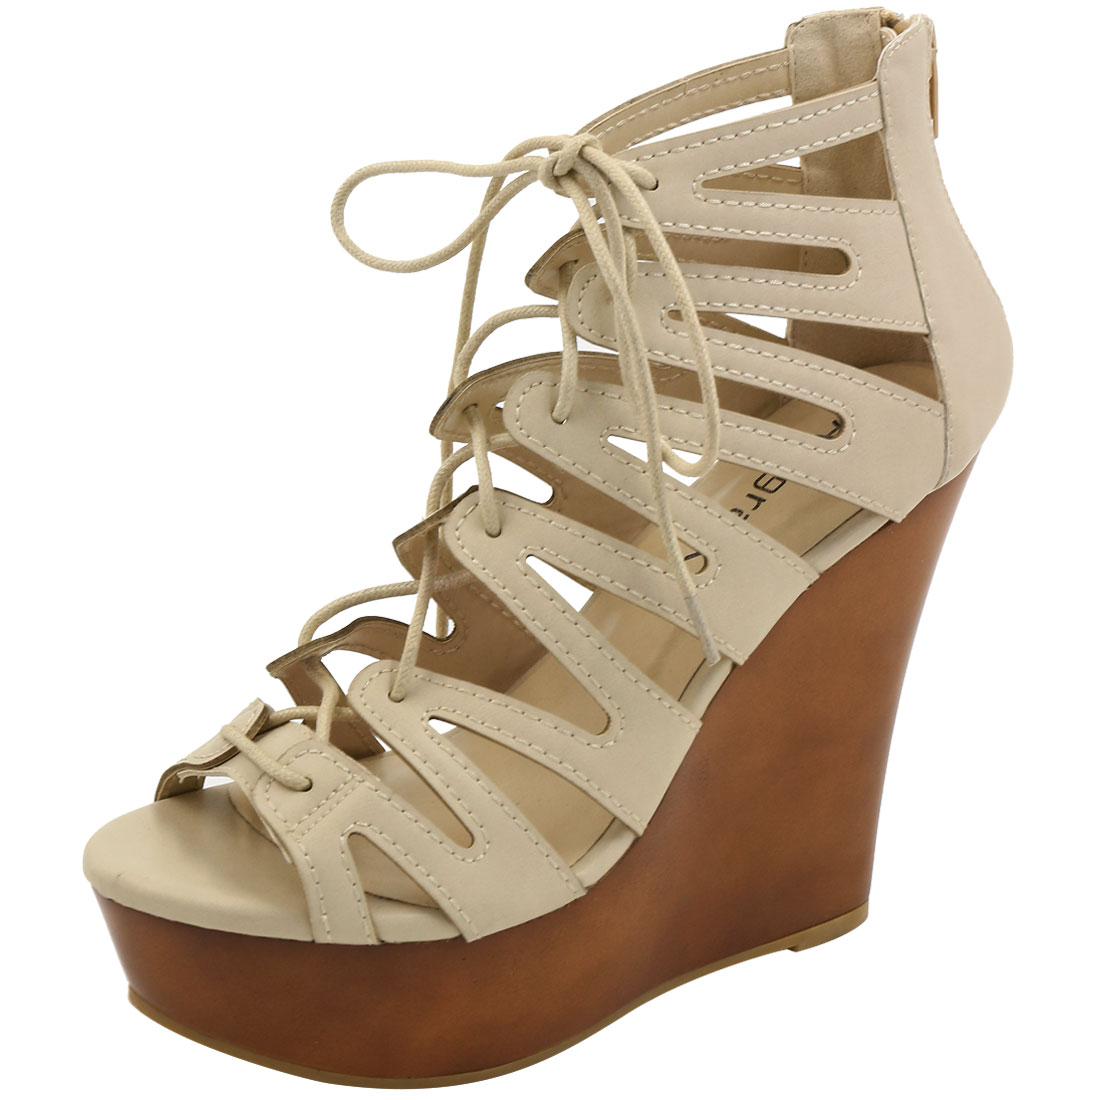 Woman Open Toe Lace-Up Cutout Platform Wedge Sandals Beige US 8